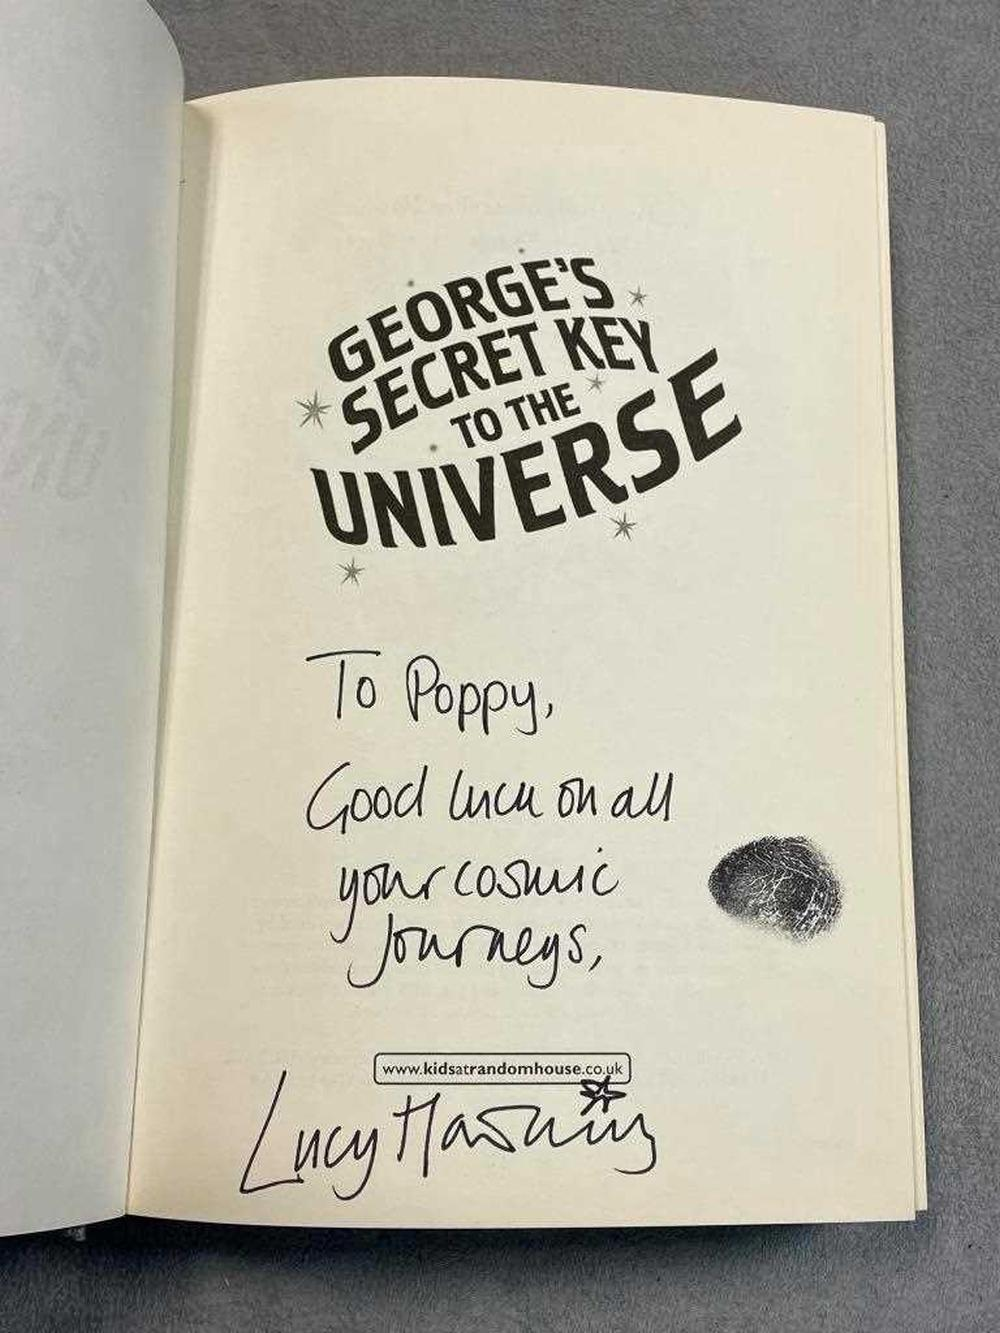 HAWKING (Stephen and Lucy) George's Secret Key to the Universe, 1st edition and 1st impression 2007, signed and inscribed by Lucy Hawking with Stephen's thumb-print 'To Poppy, Good luck on all your cosmic journeys', good in dust jacket